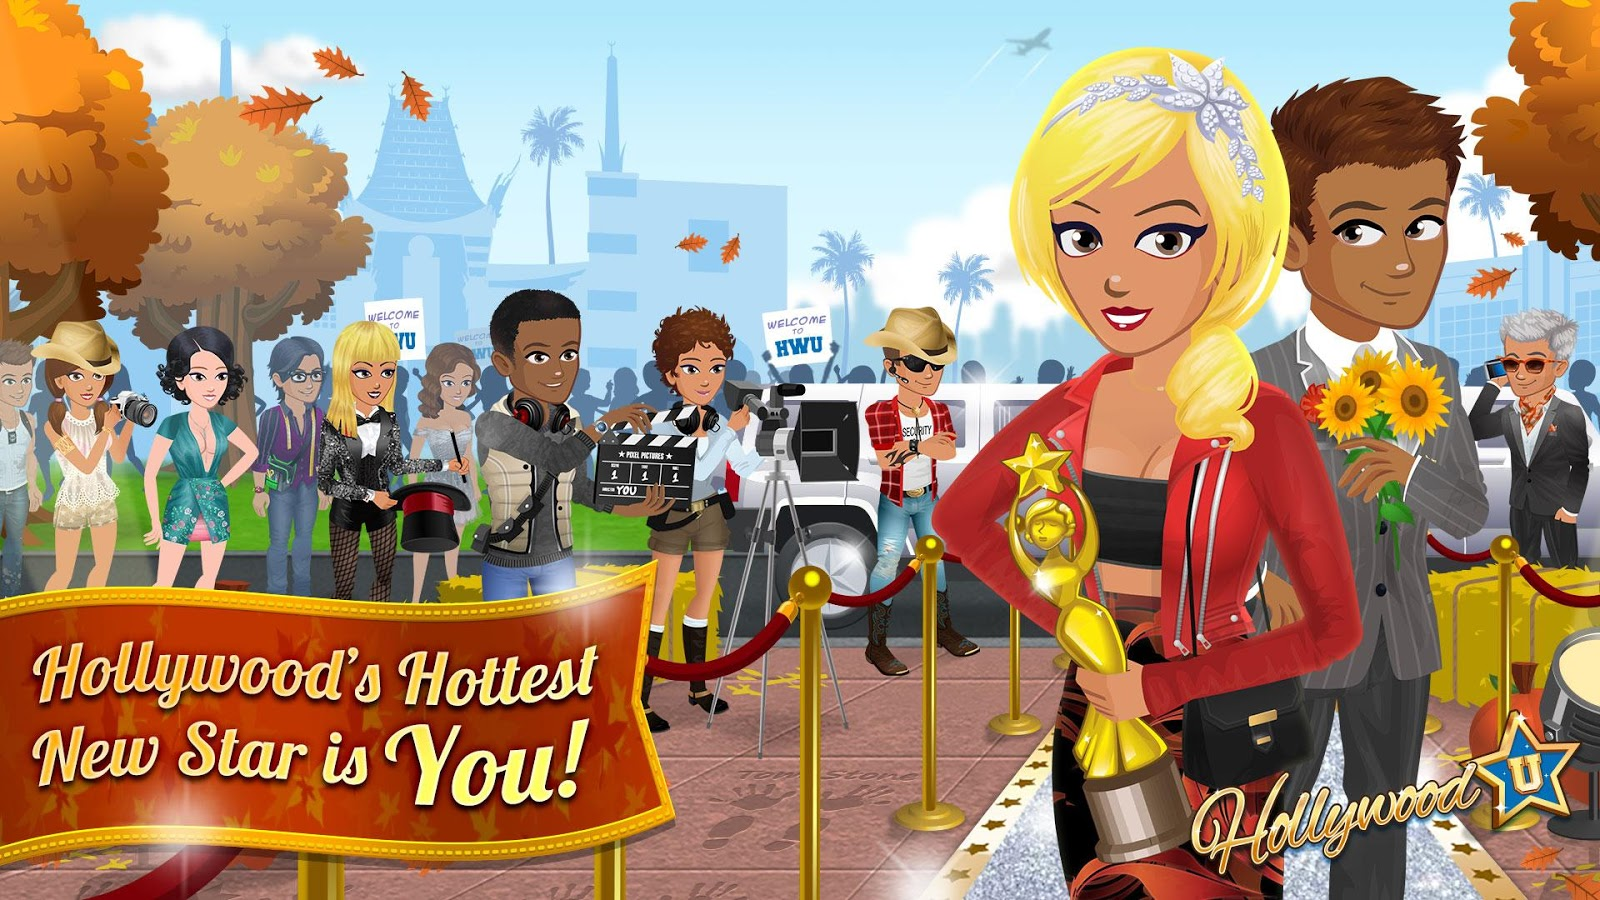 dating in hollywood u rising stars Hollywood rising star : you just got to la with big plans to be a big star slasher films romantic comedies action movies you will audition for every role you can think of.